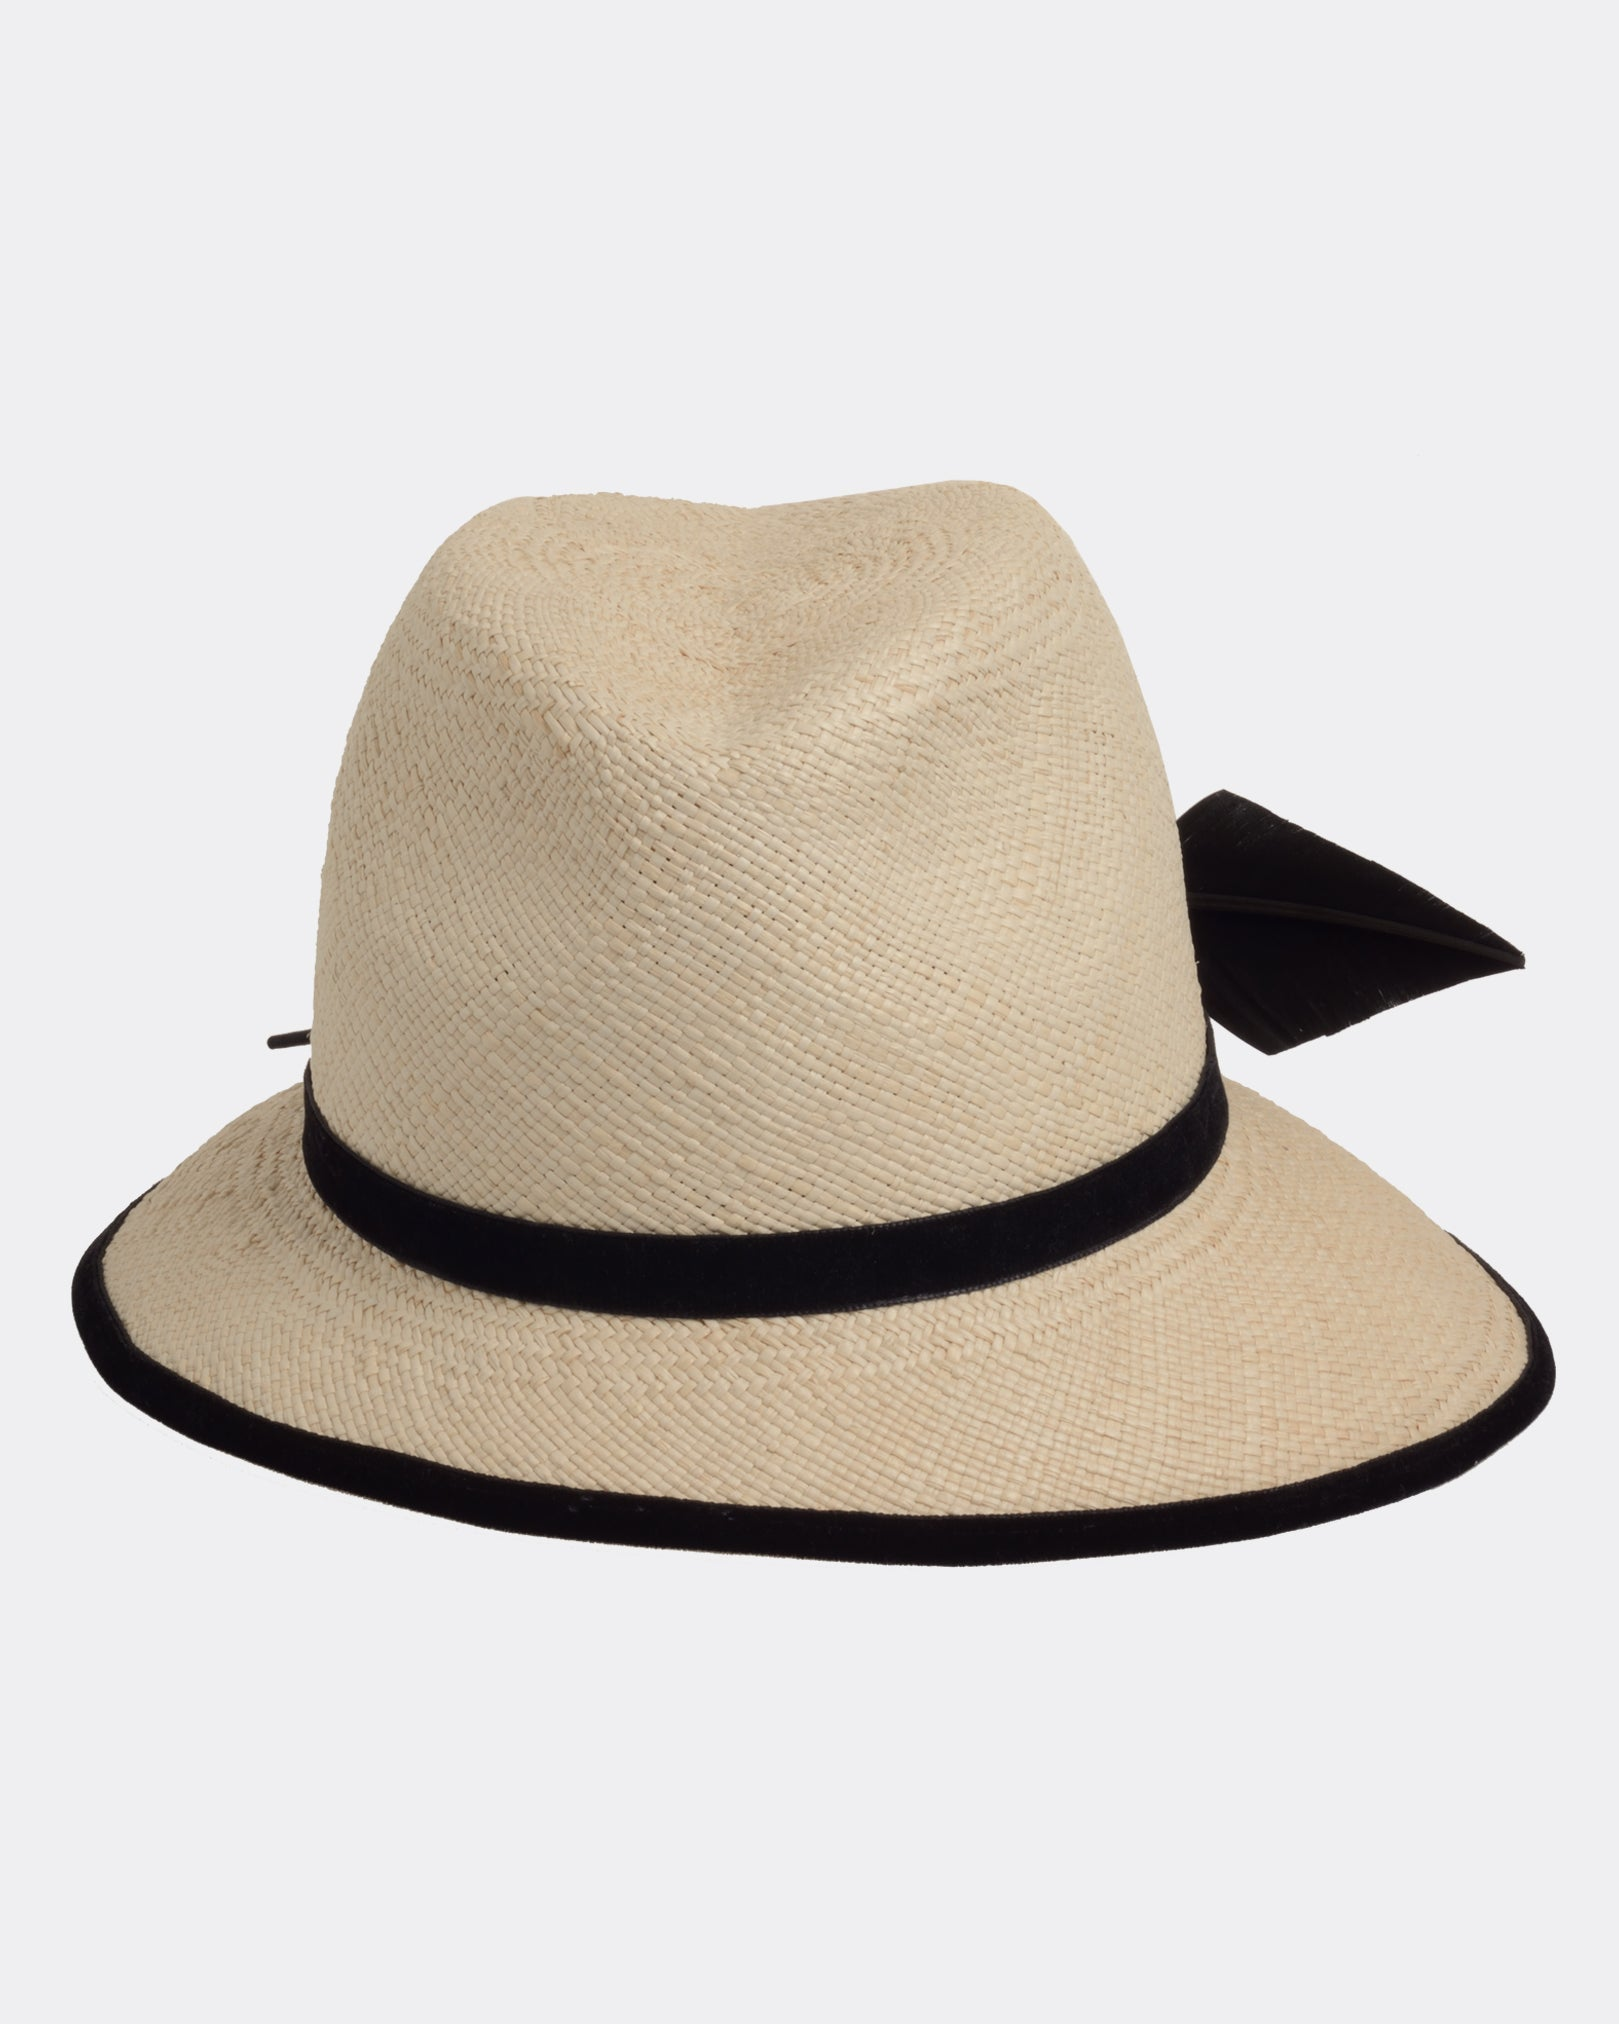 MISS GUMMO Arrow Straw Hat